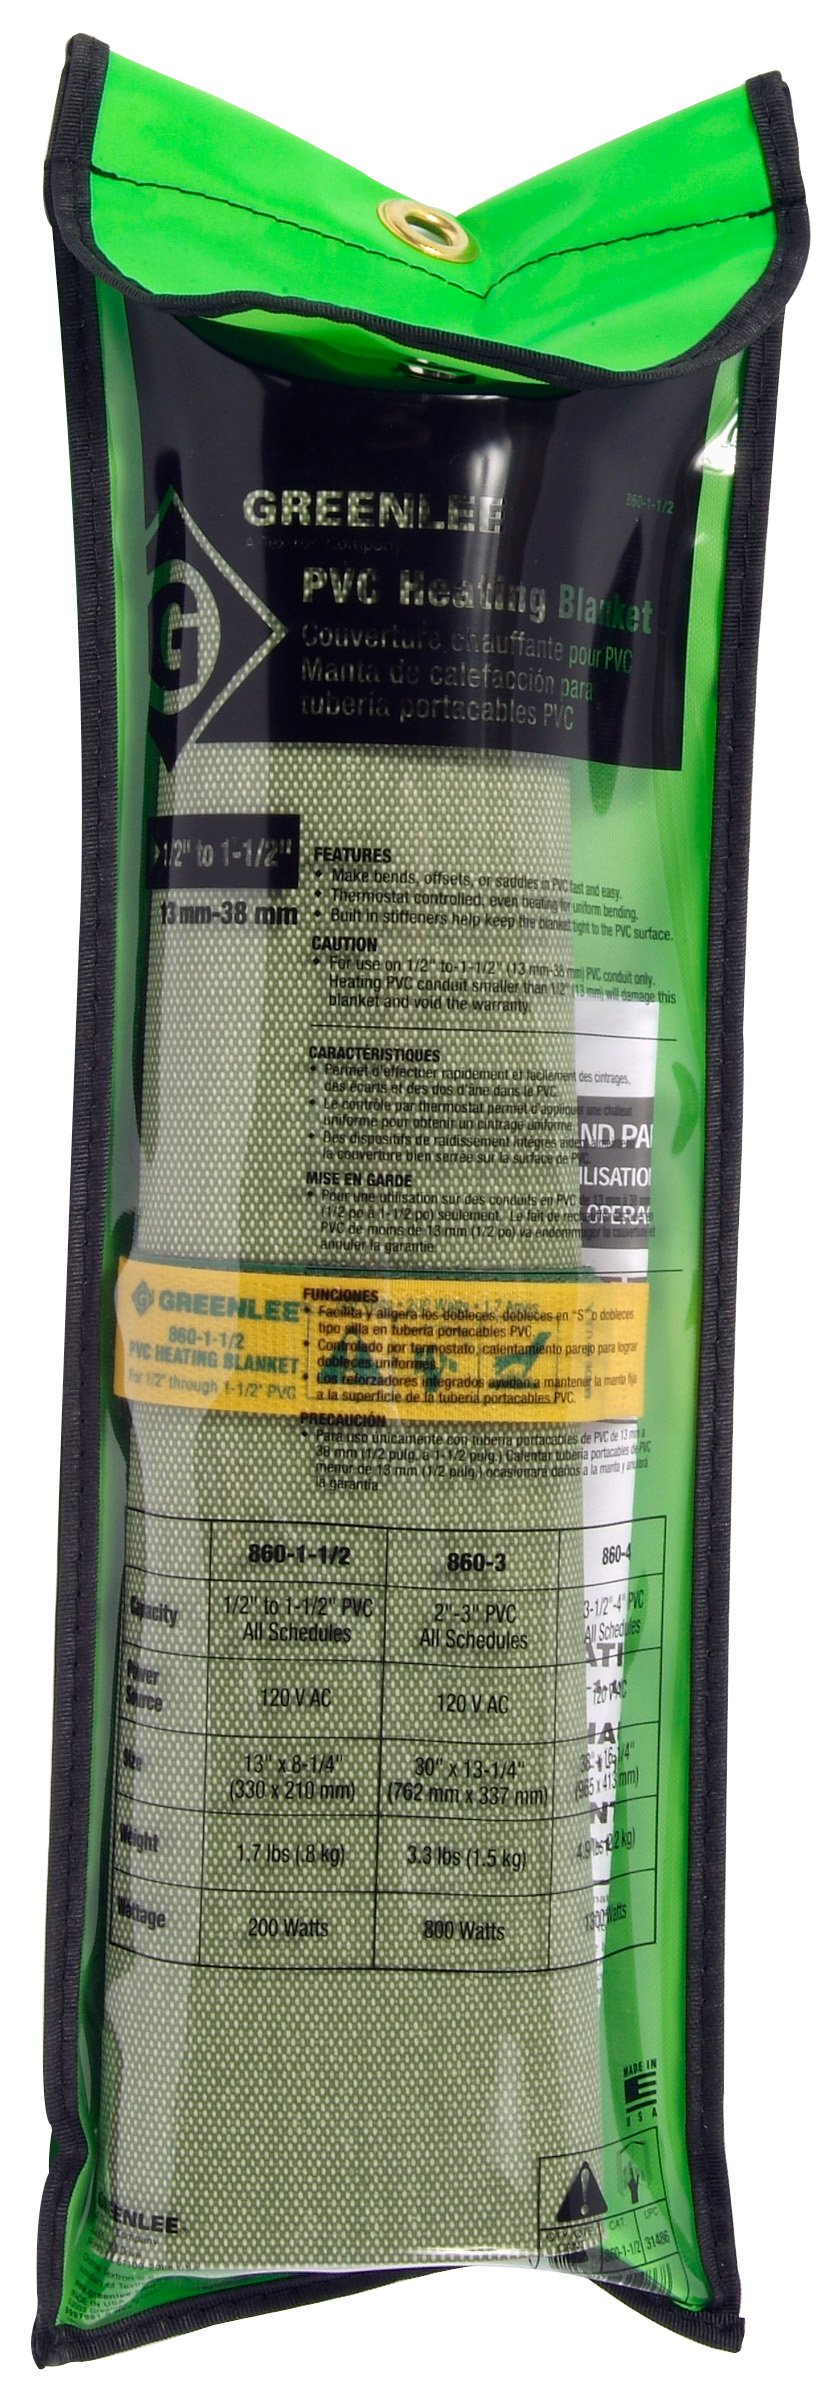 Greenlee 860-1 PVC Heating Blanket, 1/2-Inch to 1-1/2-Inch Capacity